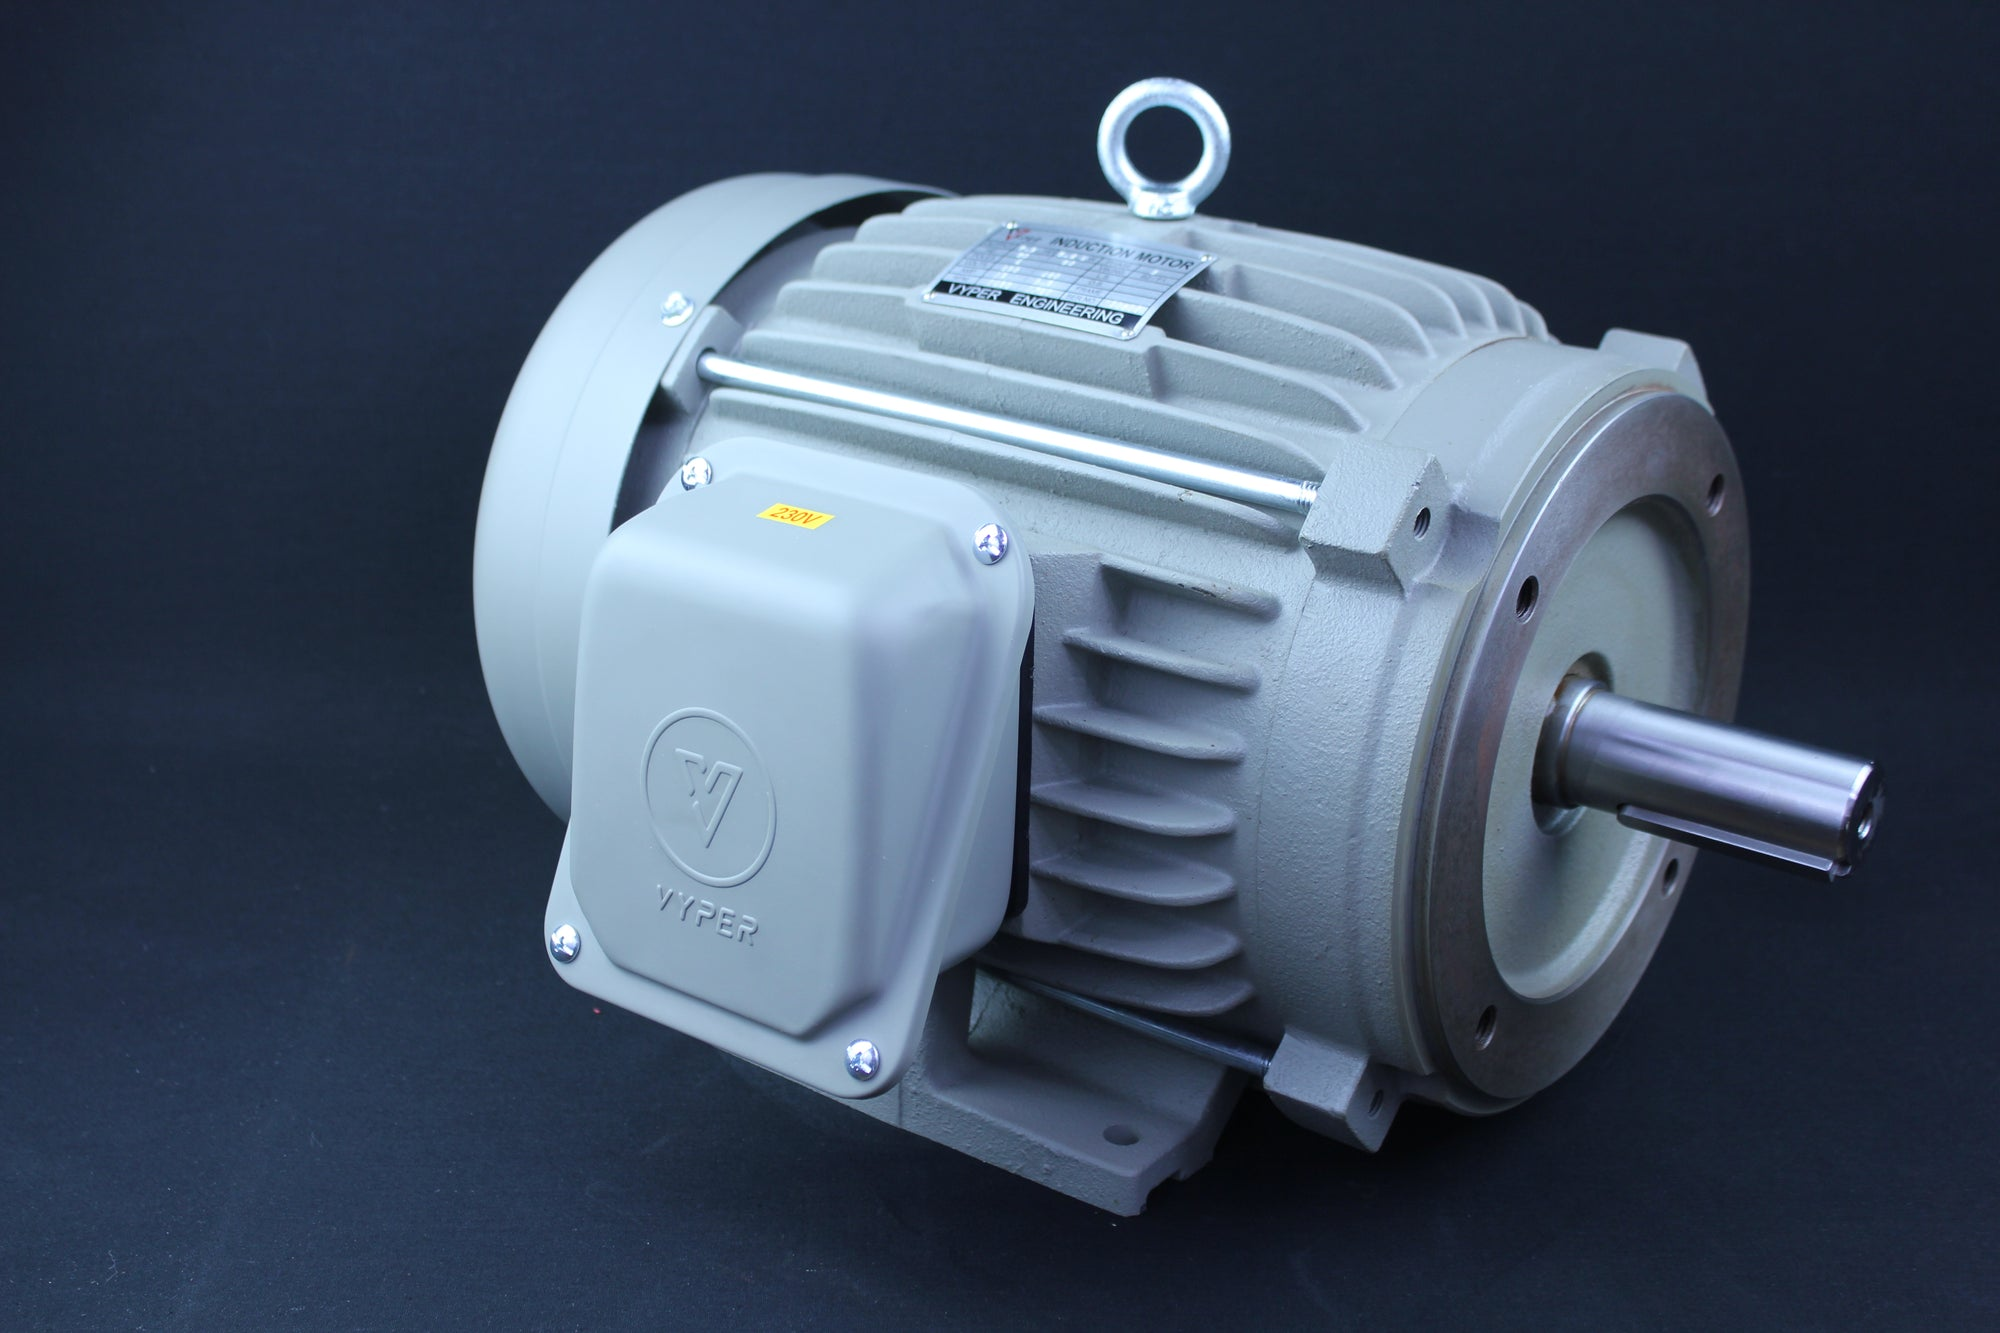 Three Phase Electrical Motor - 7.5HP - 208-230/460V - 1430/1720RPM - 50/60HZ - 213T C Face/Foot